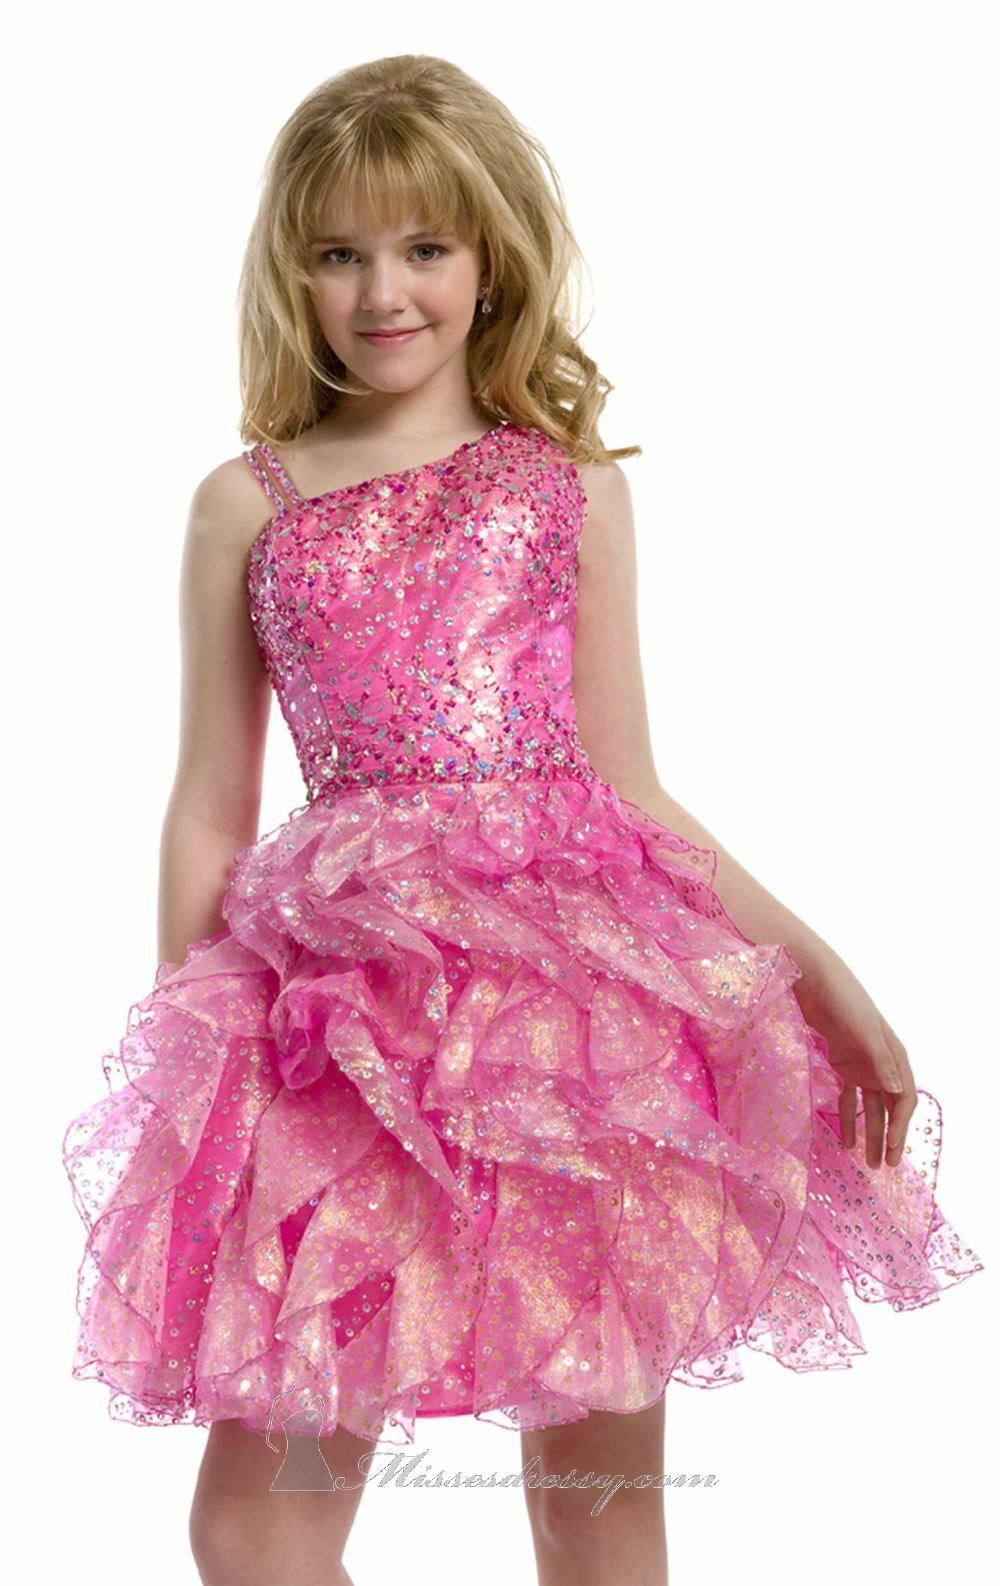 Party Time 1496 Dress - MissesDressy.com | Kids' Dresses ...